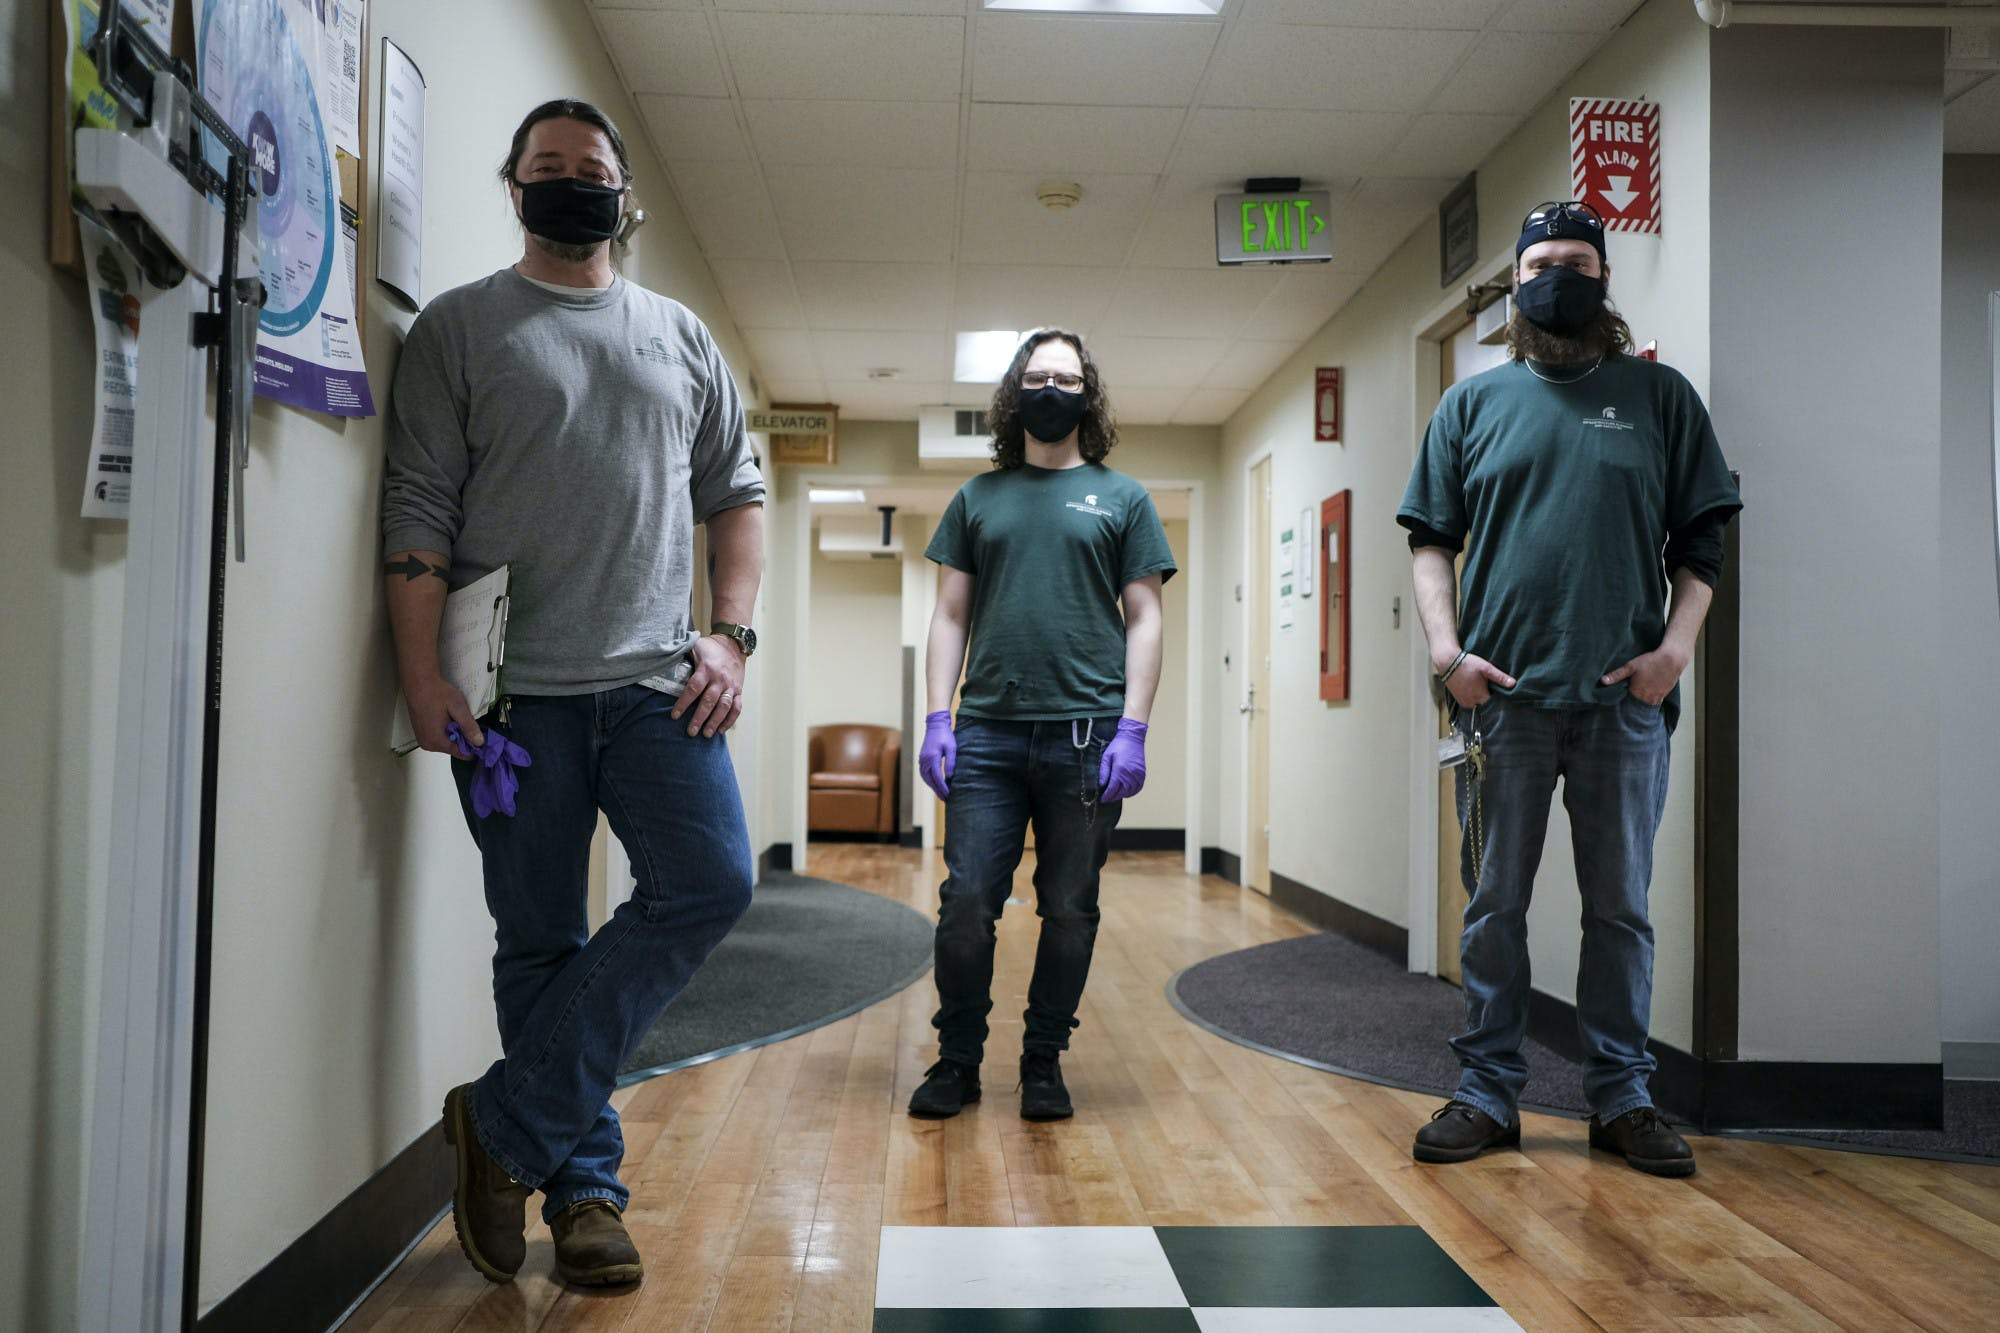 Three people all wearing masks, jeans, work boots and shirts with the Michigan State Spartan logo on them stand slightly apart in a medical building hallway to pose for a photo.